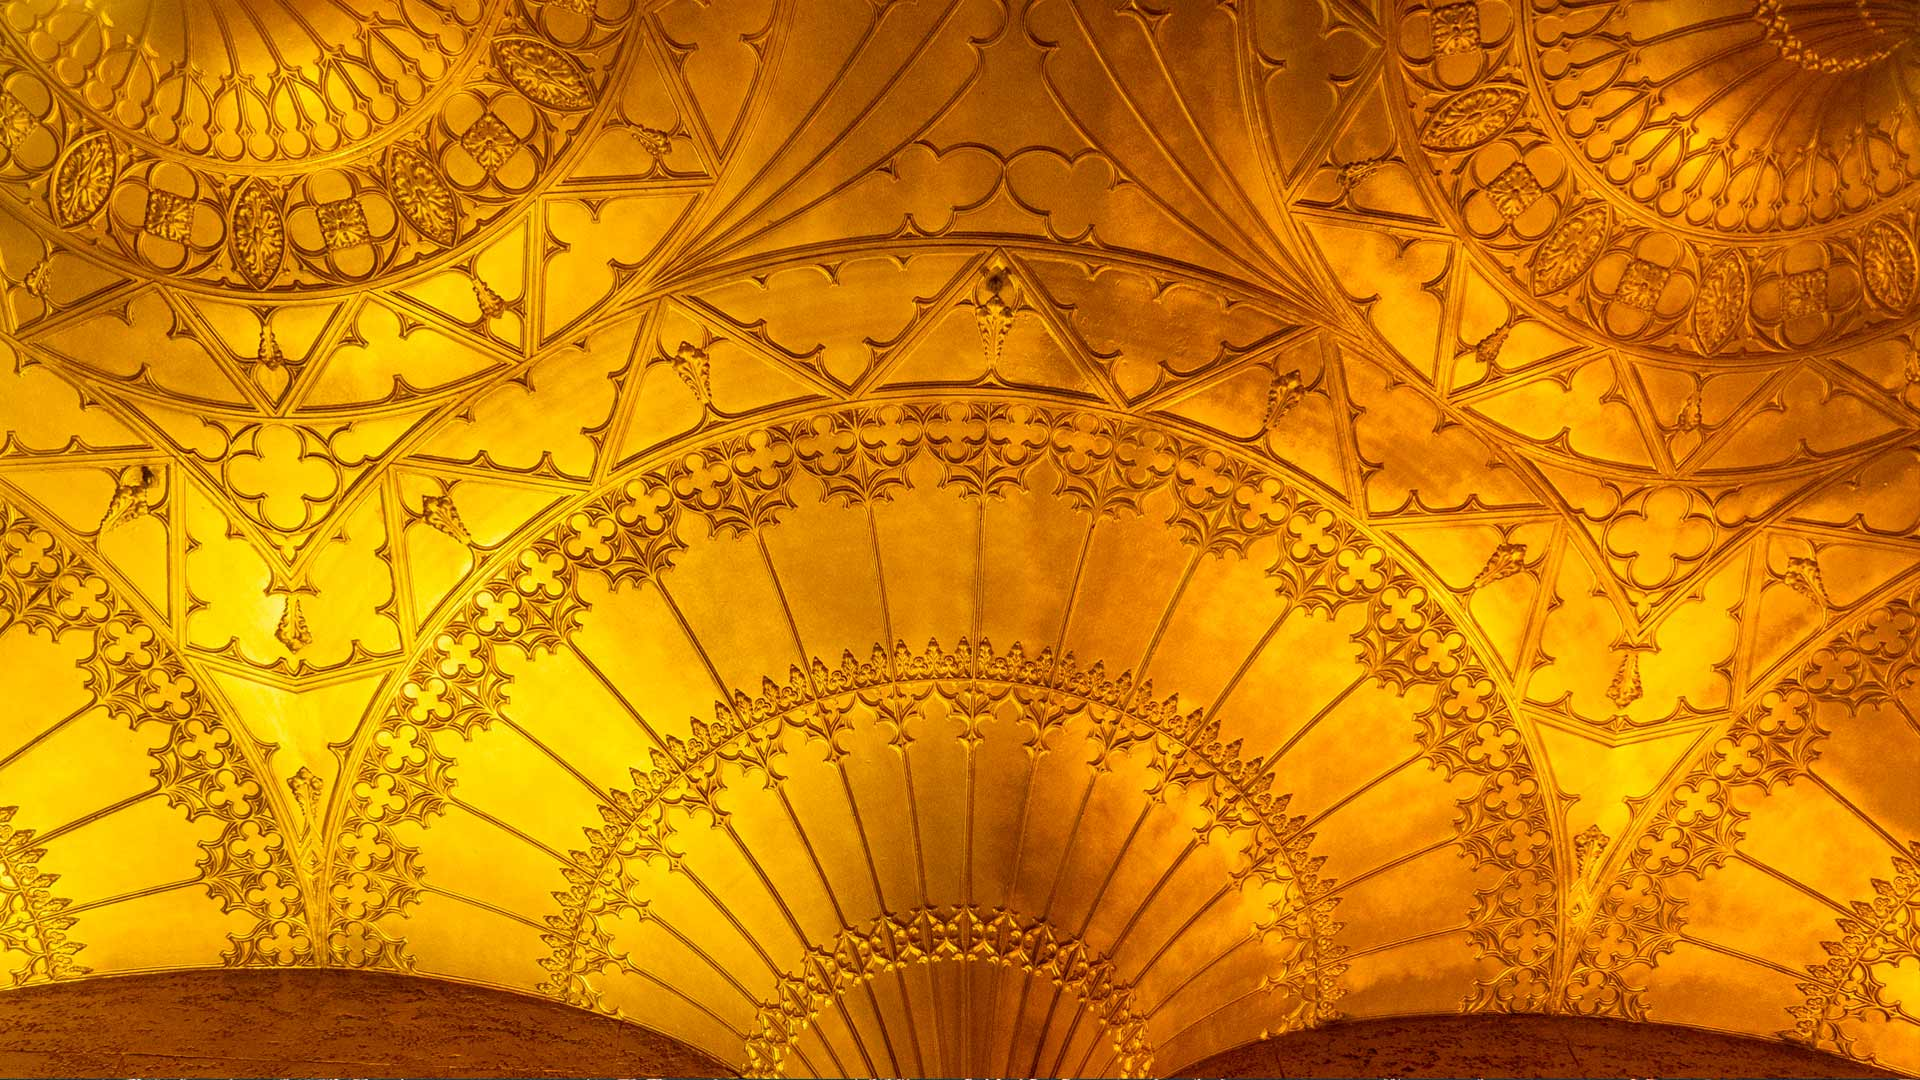 Fan vaulted ceiling of the foyer of the State Theatre, Sydney (© domonabike/Alamy Stock Photo)